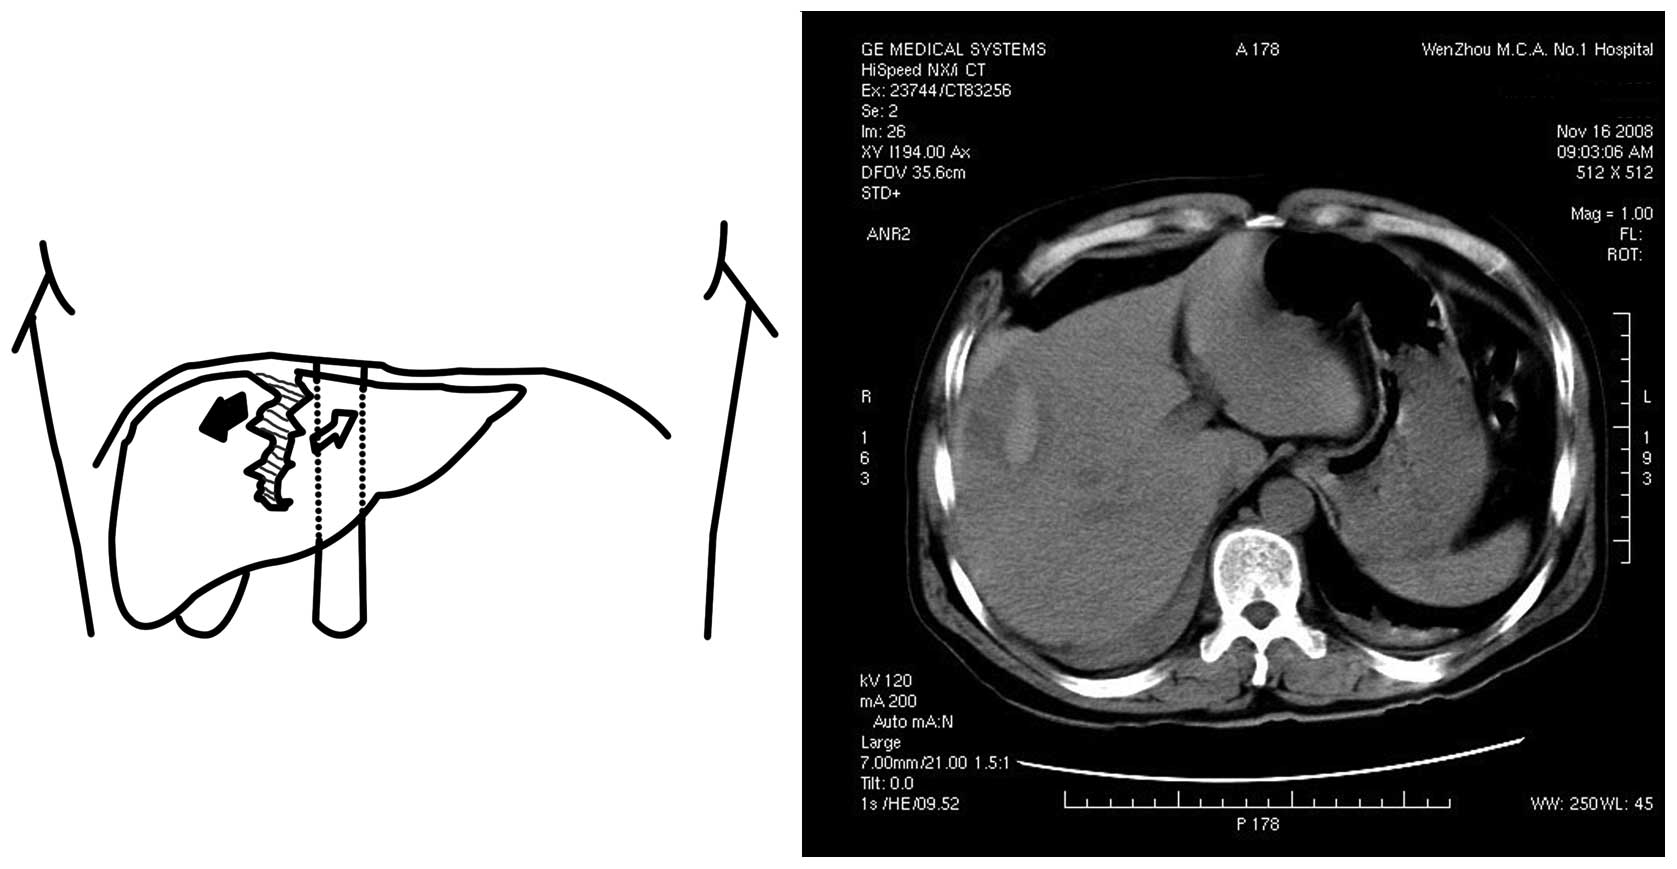 Mechanisms of blunt liver trauma patterns: An analysis of 53 cases